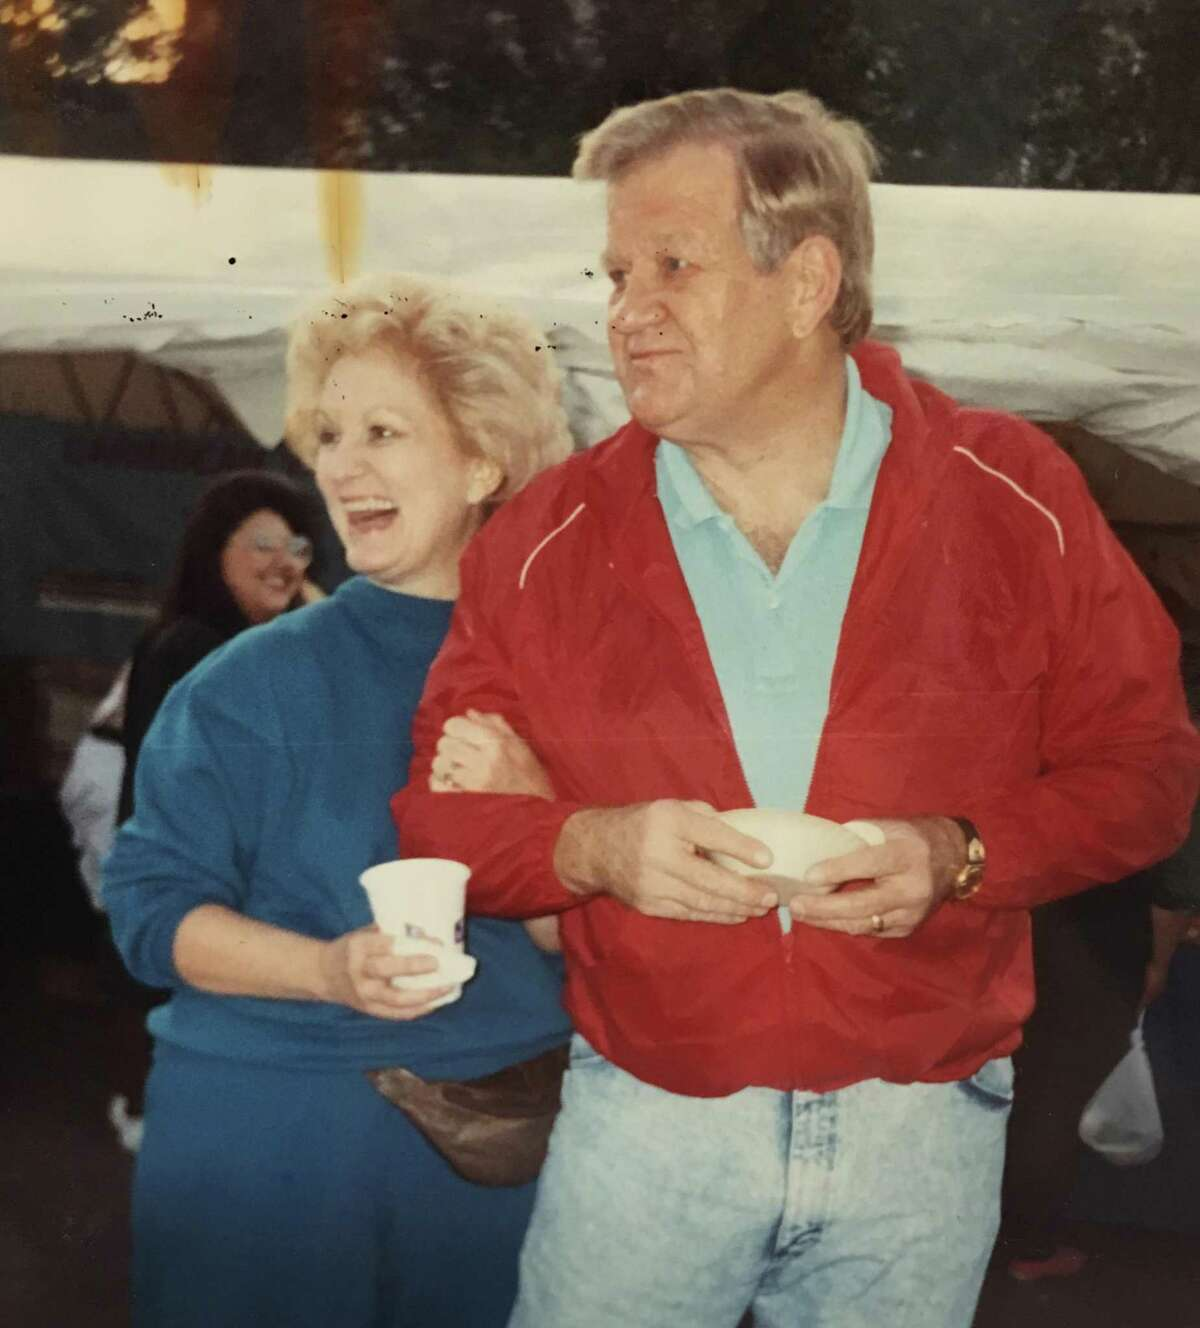 Bobby and Kay Weise at a Conroe function. Kay Weise taught English at Conroe High School for many years and Bobby Weise was a coach and lead the 1968 Conroe Tigers to the state basketball tournament. Kay Weise passed away in February 2015 and Bobby Weise passed away in March 2018.